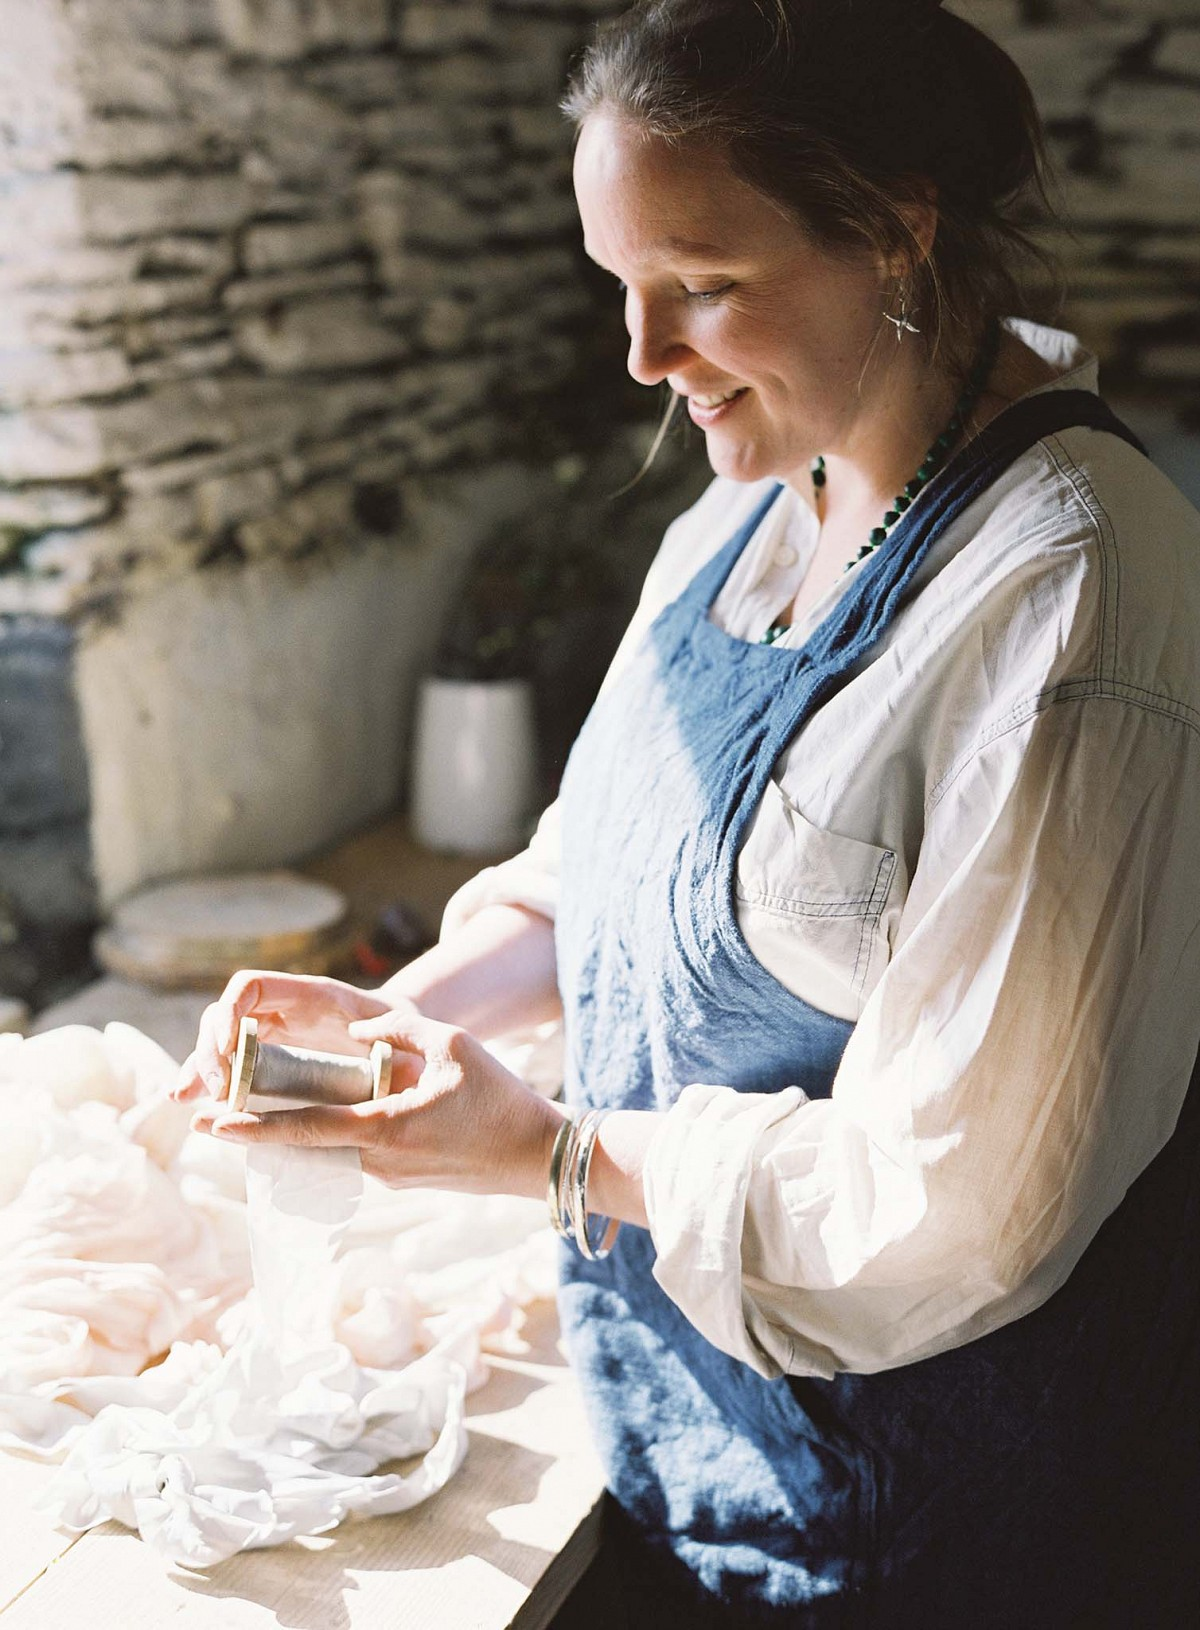 Artisan Profile: The Making of the Wedding Dress, Ribbons, and Stationery